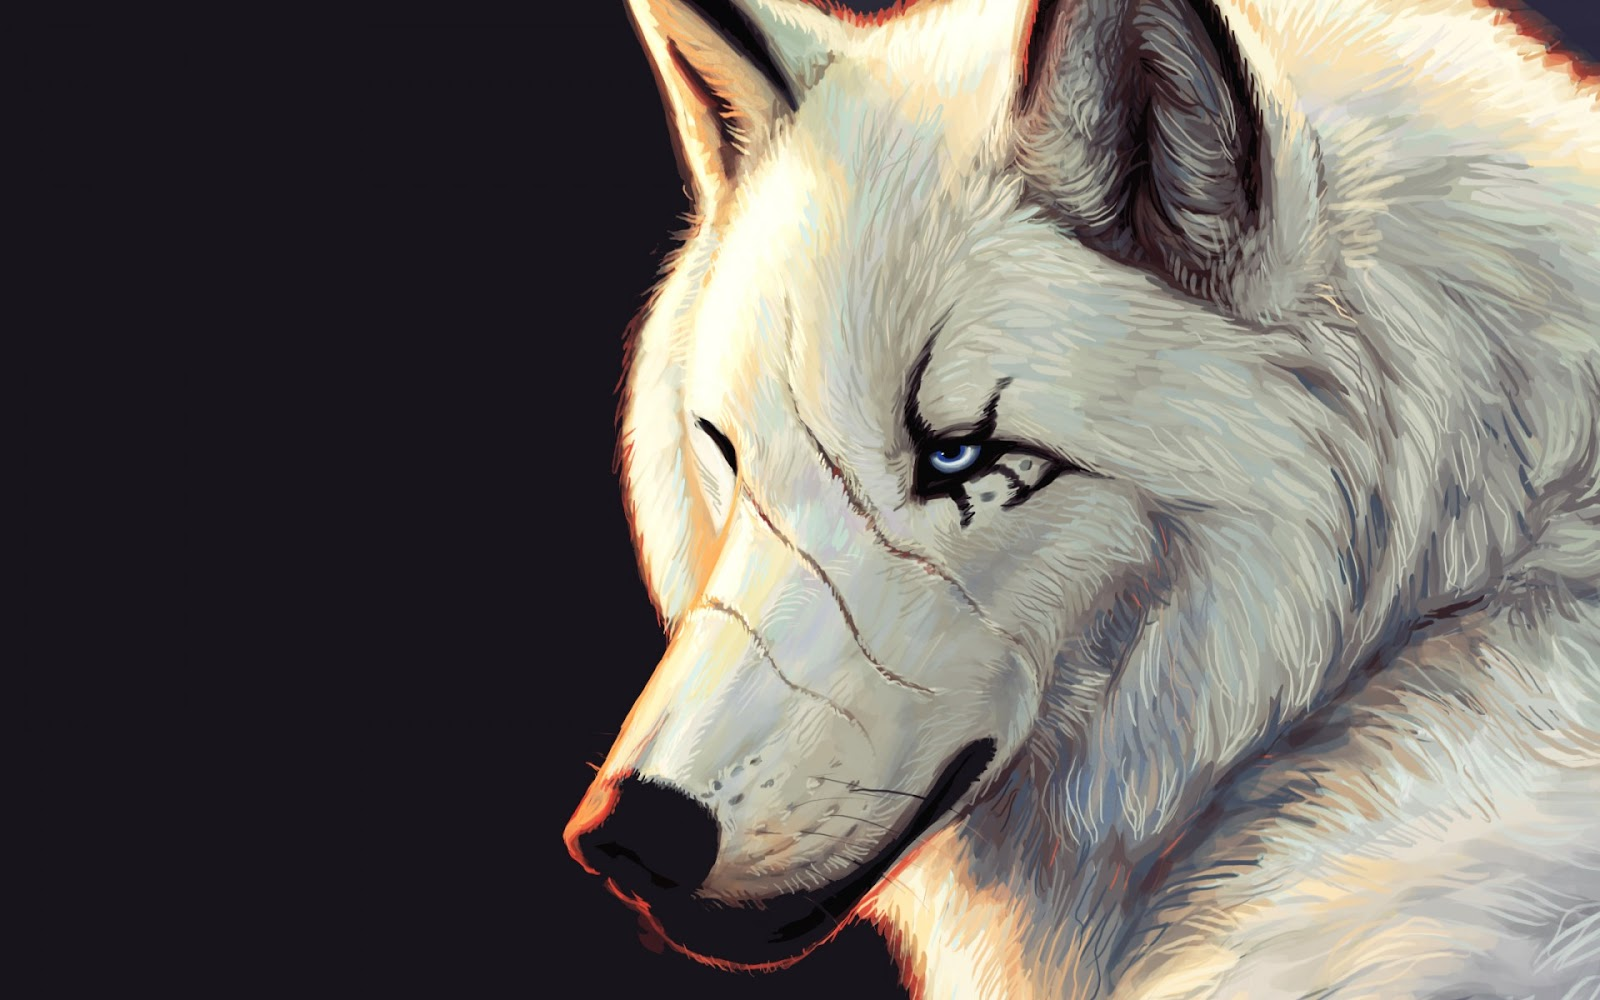 Lobo Blanco Con Ojos Azules Fondos De Pantalla Hd Wallpapers Hd